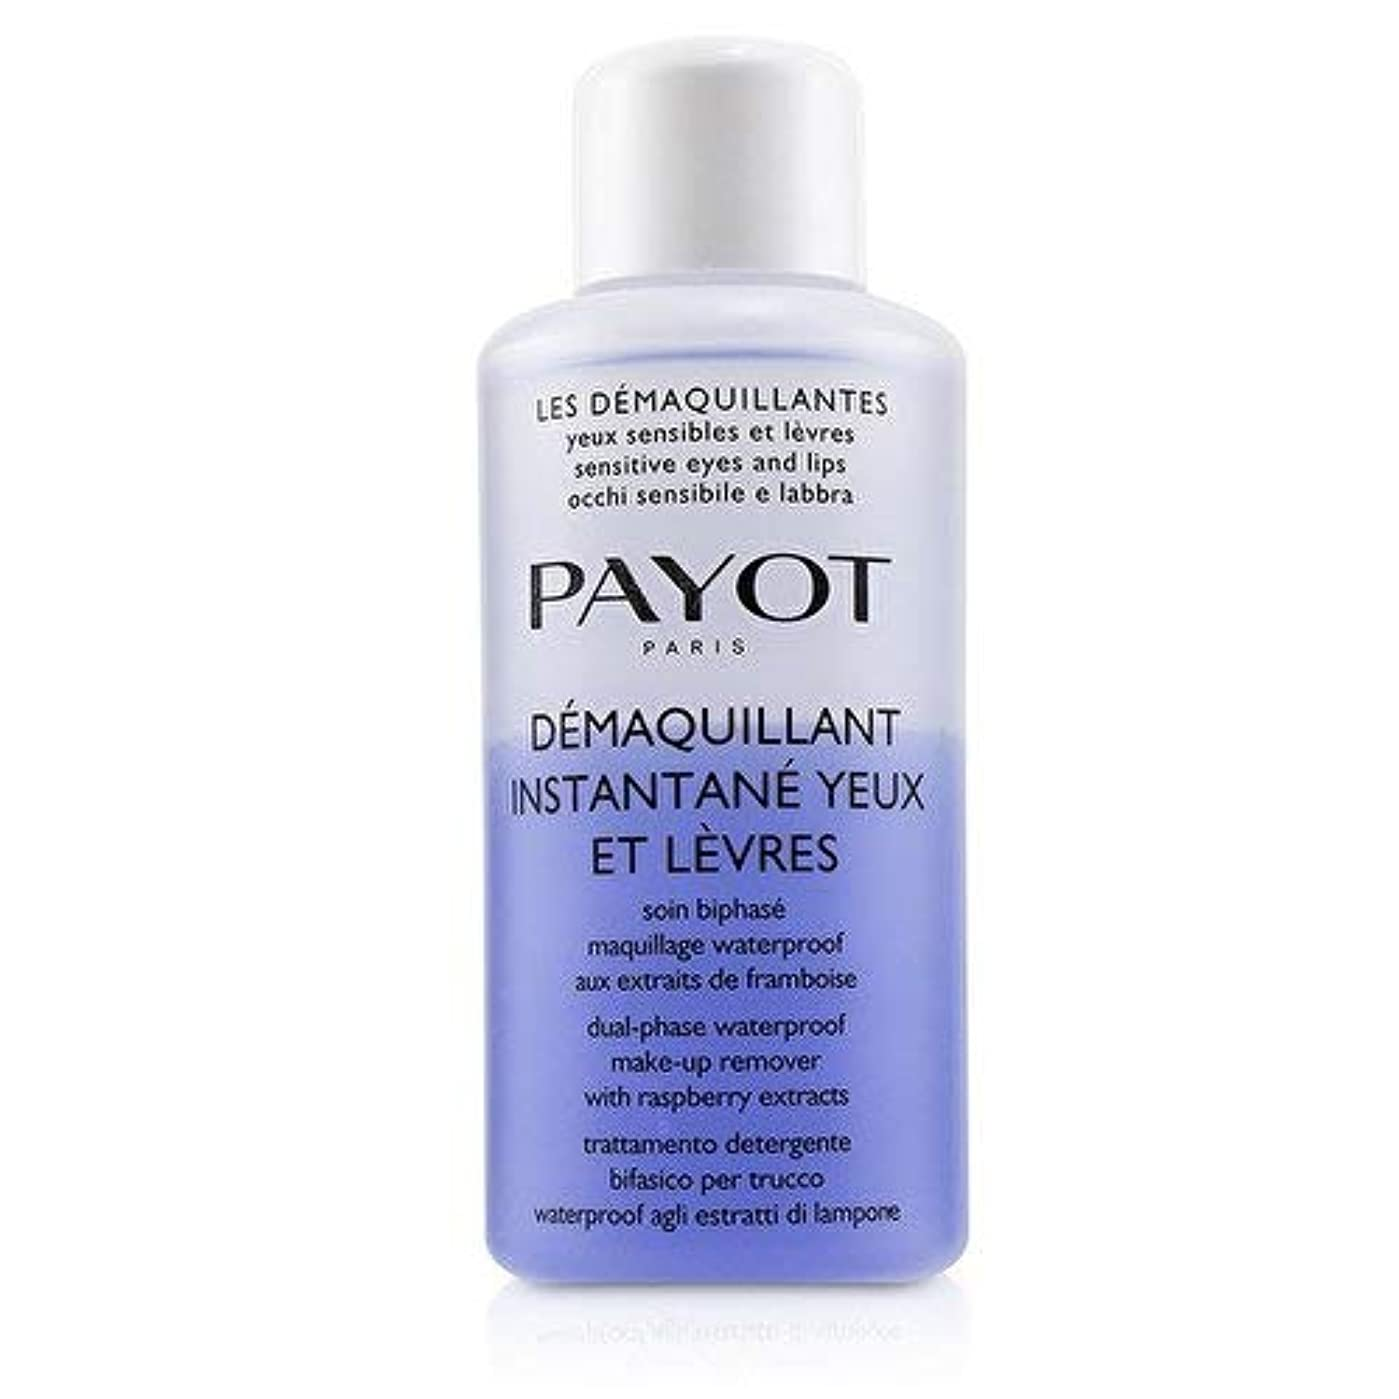 雑多な欠陥ブルパイヨ Les Demaquillantes Demaquillant Instantane Yeux Dual-Phase Waterproof Make-Up Remover - For Sensitive Eyes...